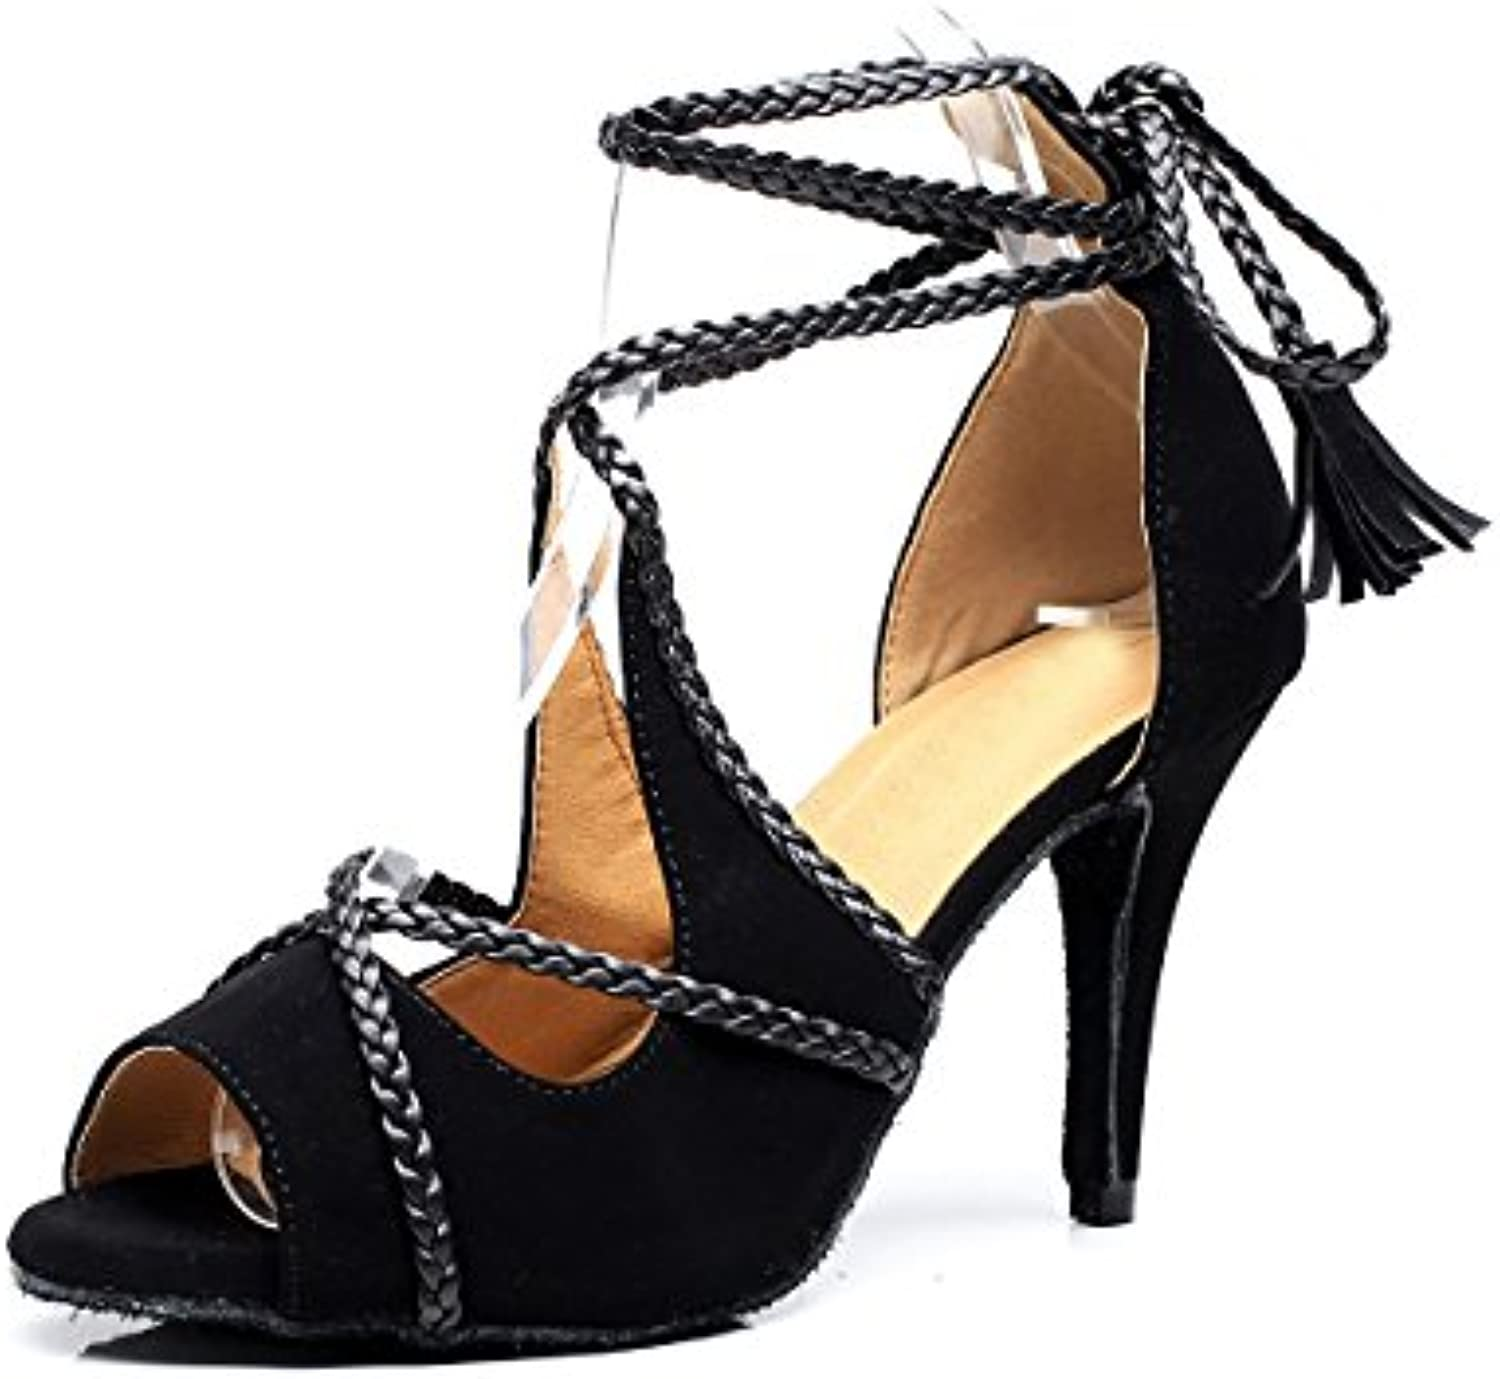 8b2baceb7816fc Minitoo Ladies Tassel String Tie Suede Latin Ballroom Dancing Shoes Shoes  Shoes Evening Prom Sandals Parent B071RN9XMB f35621